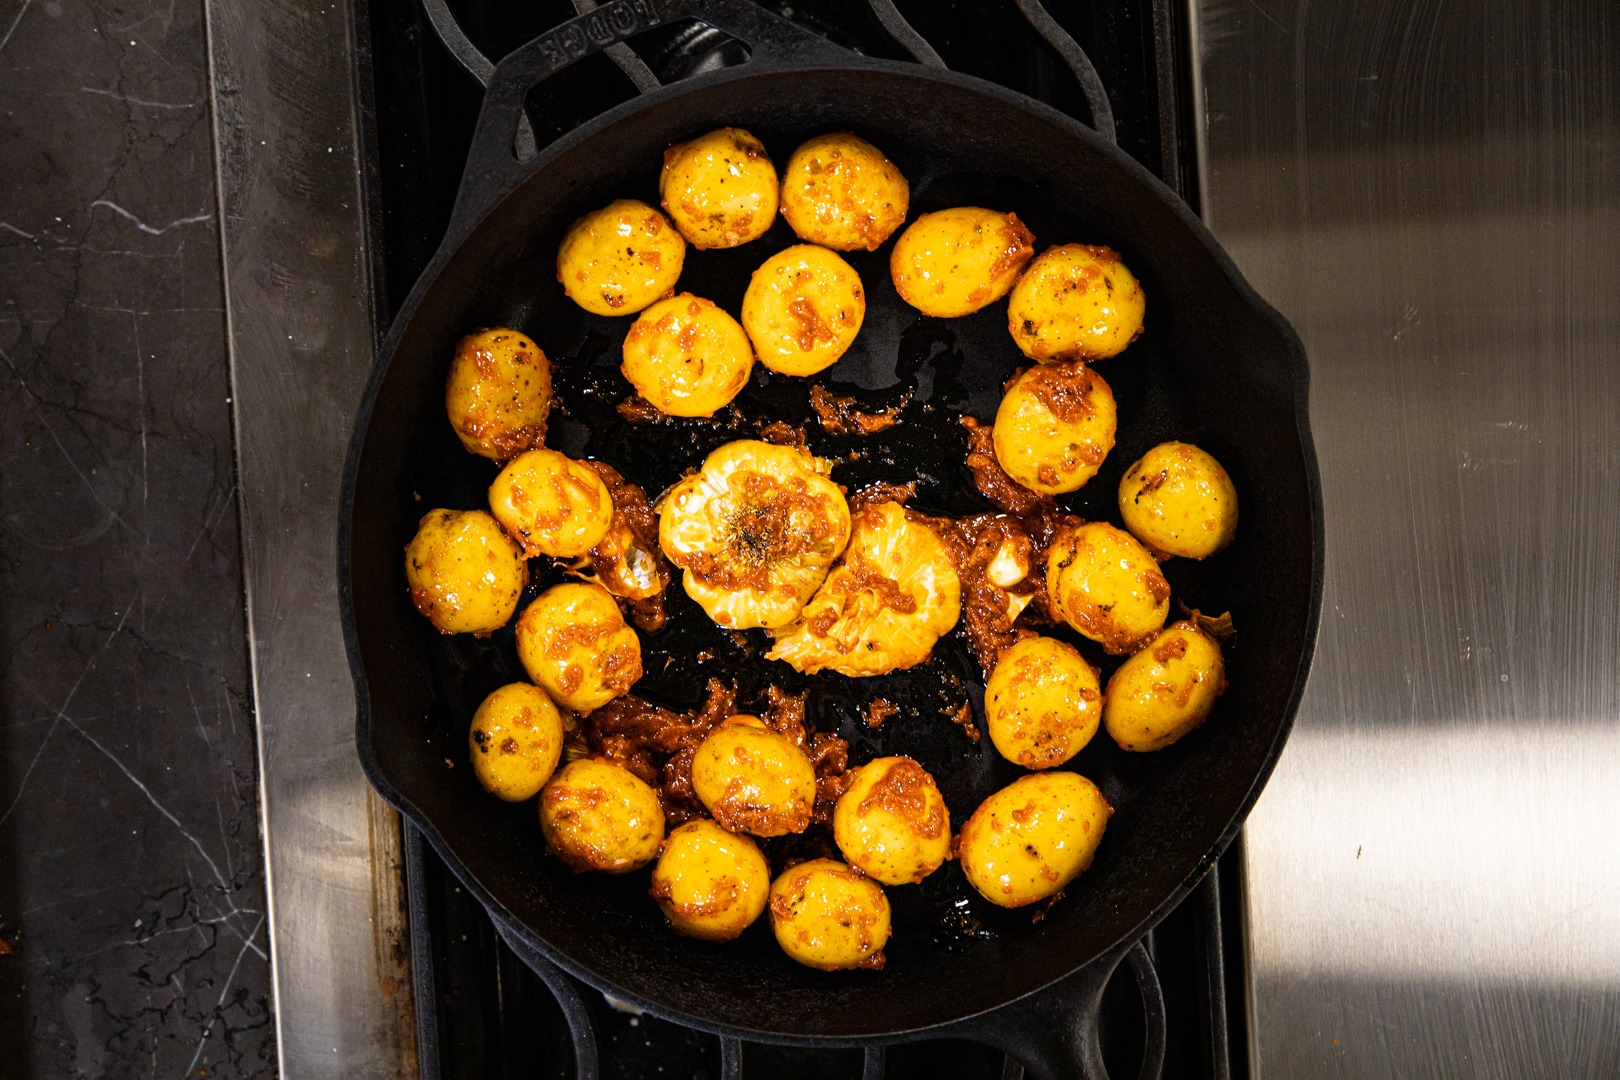 Arrange the potatoes in the pan